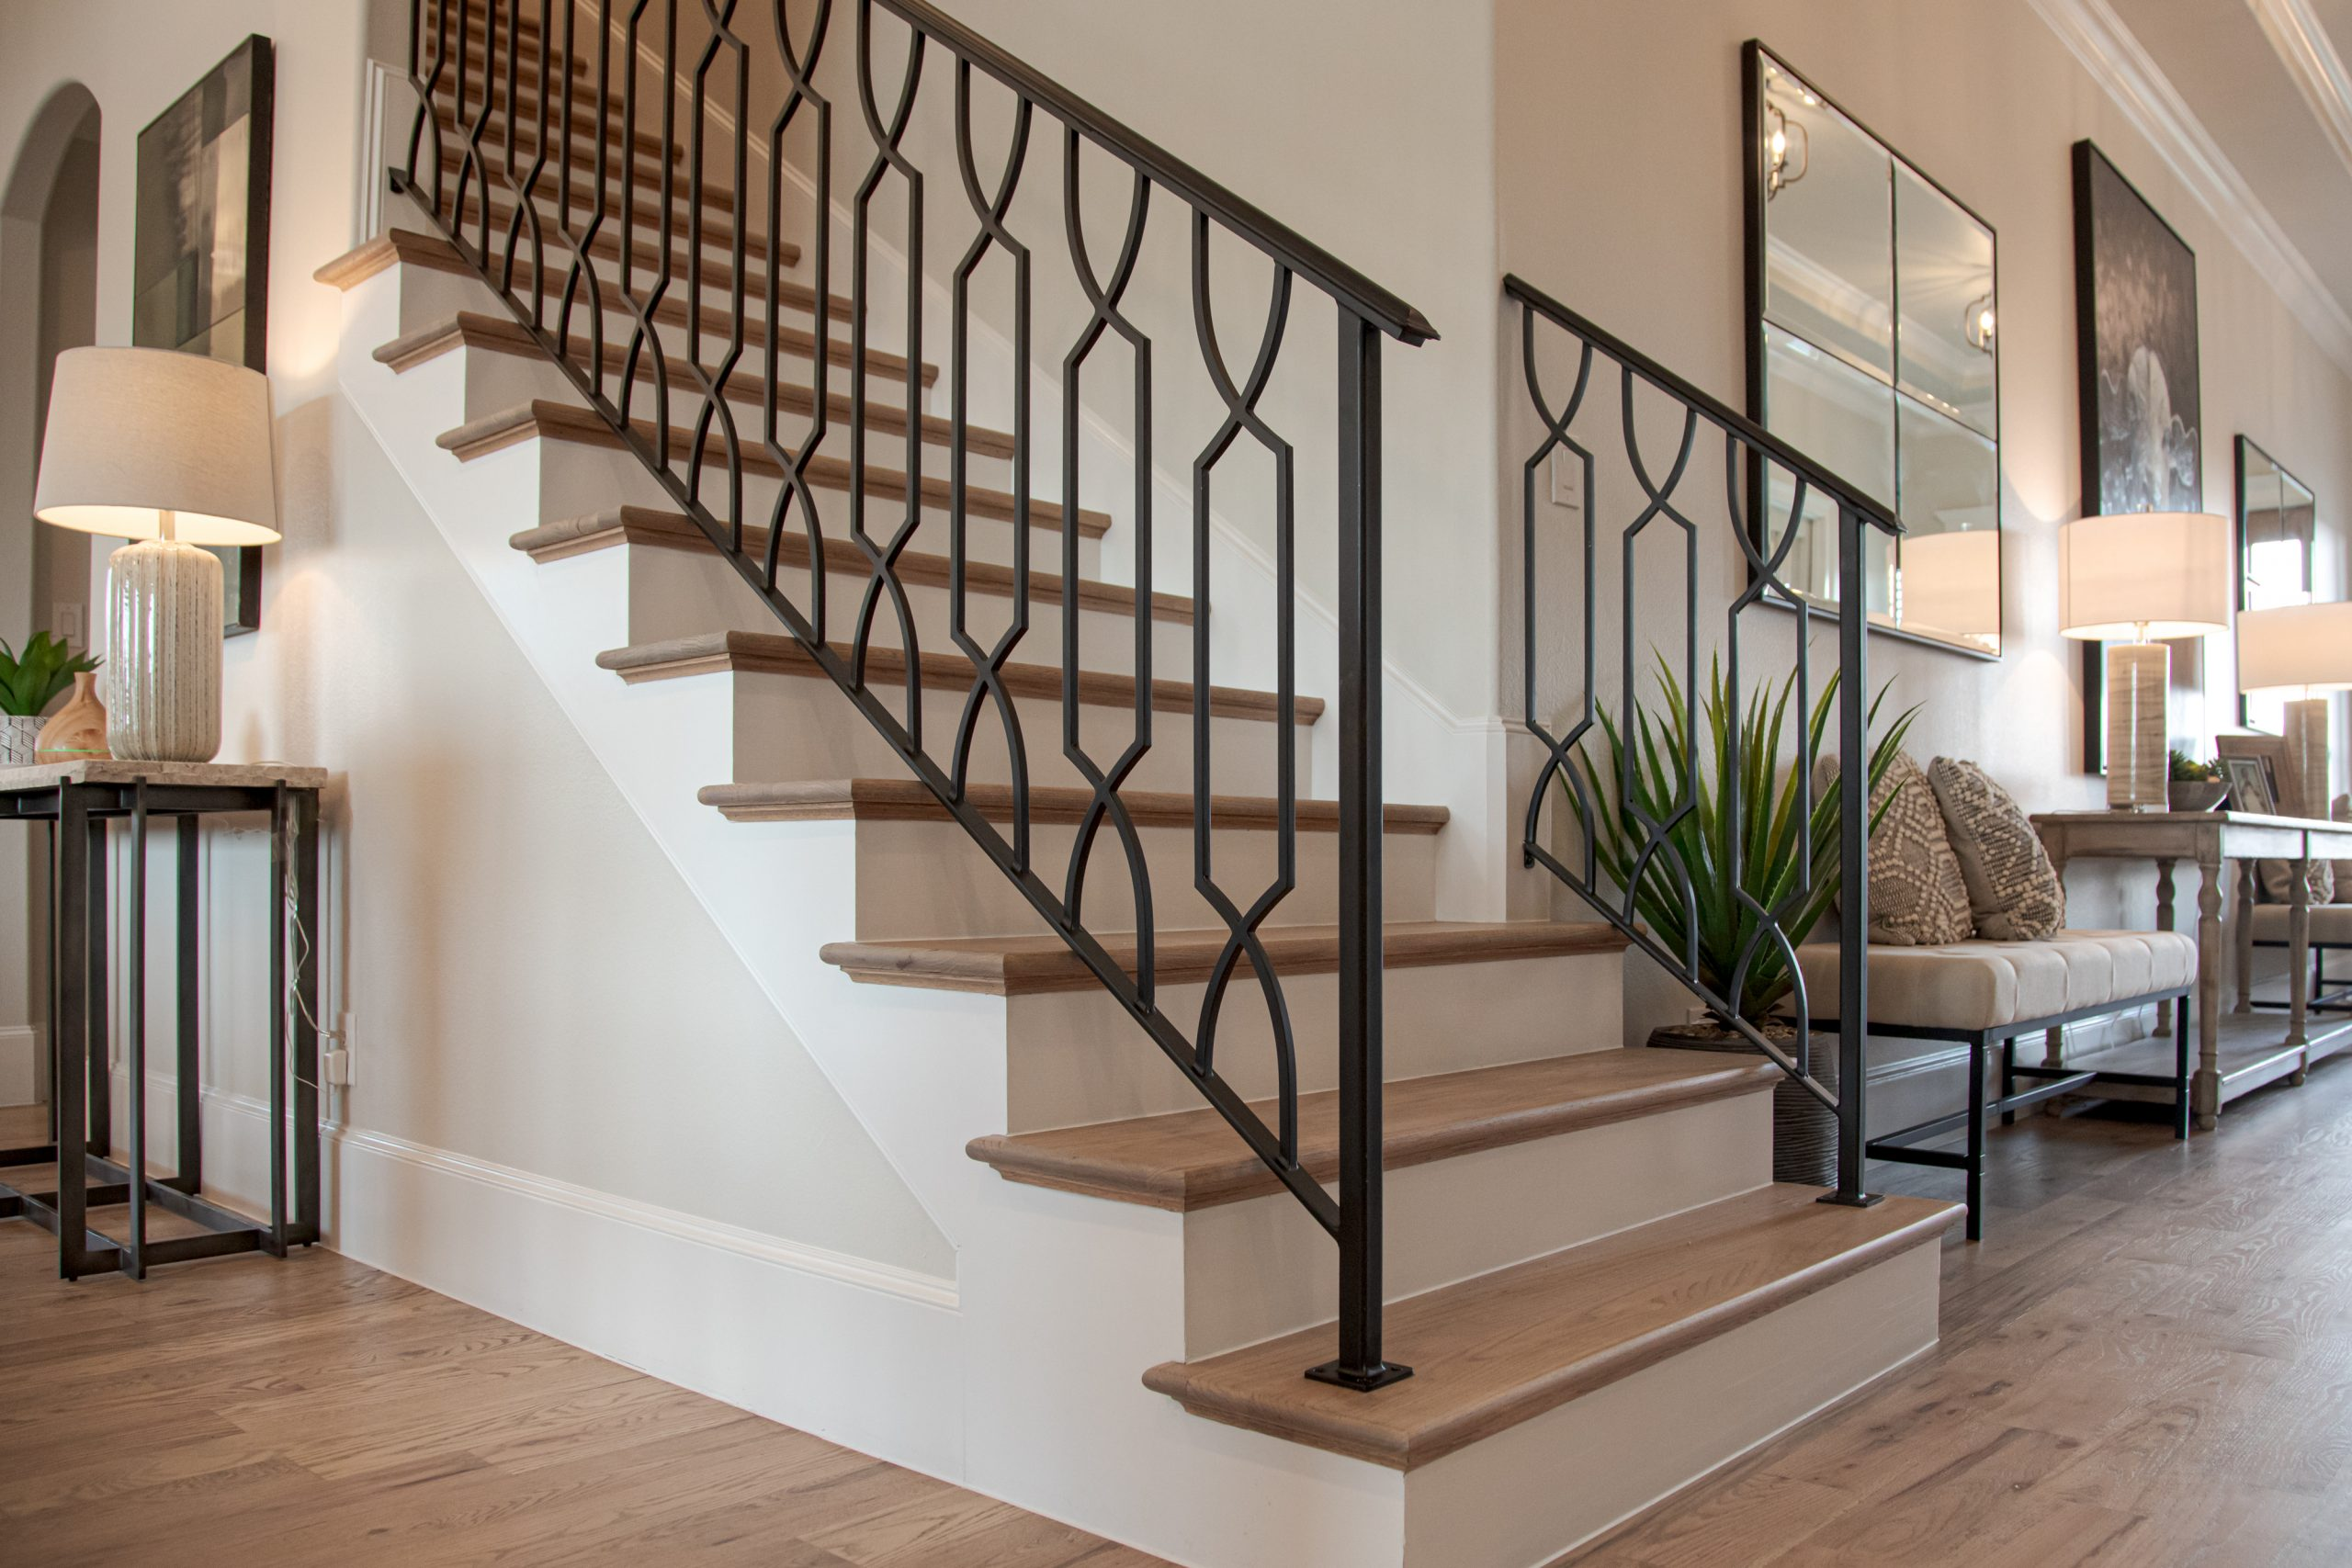 Wooden Stairs with Iron Railing